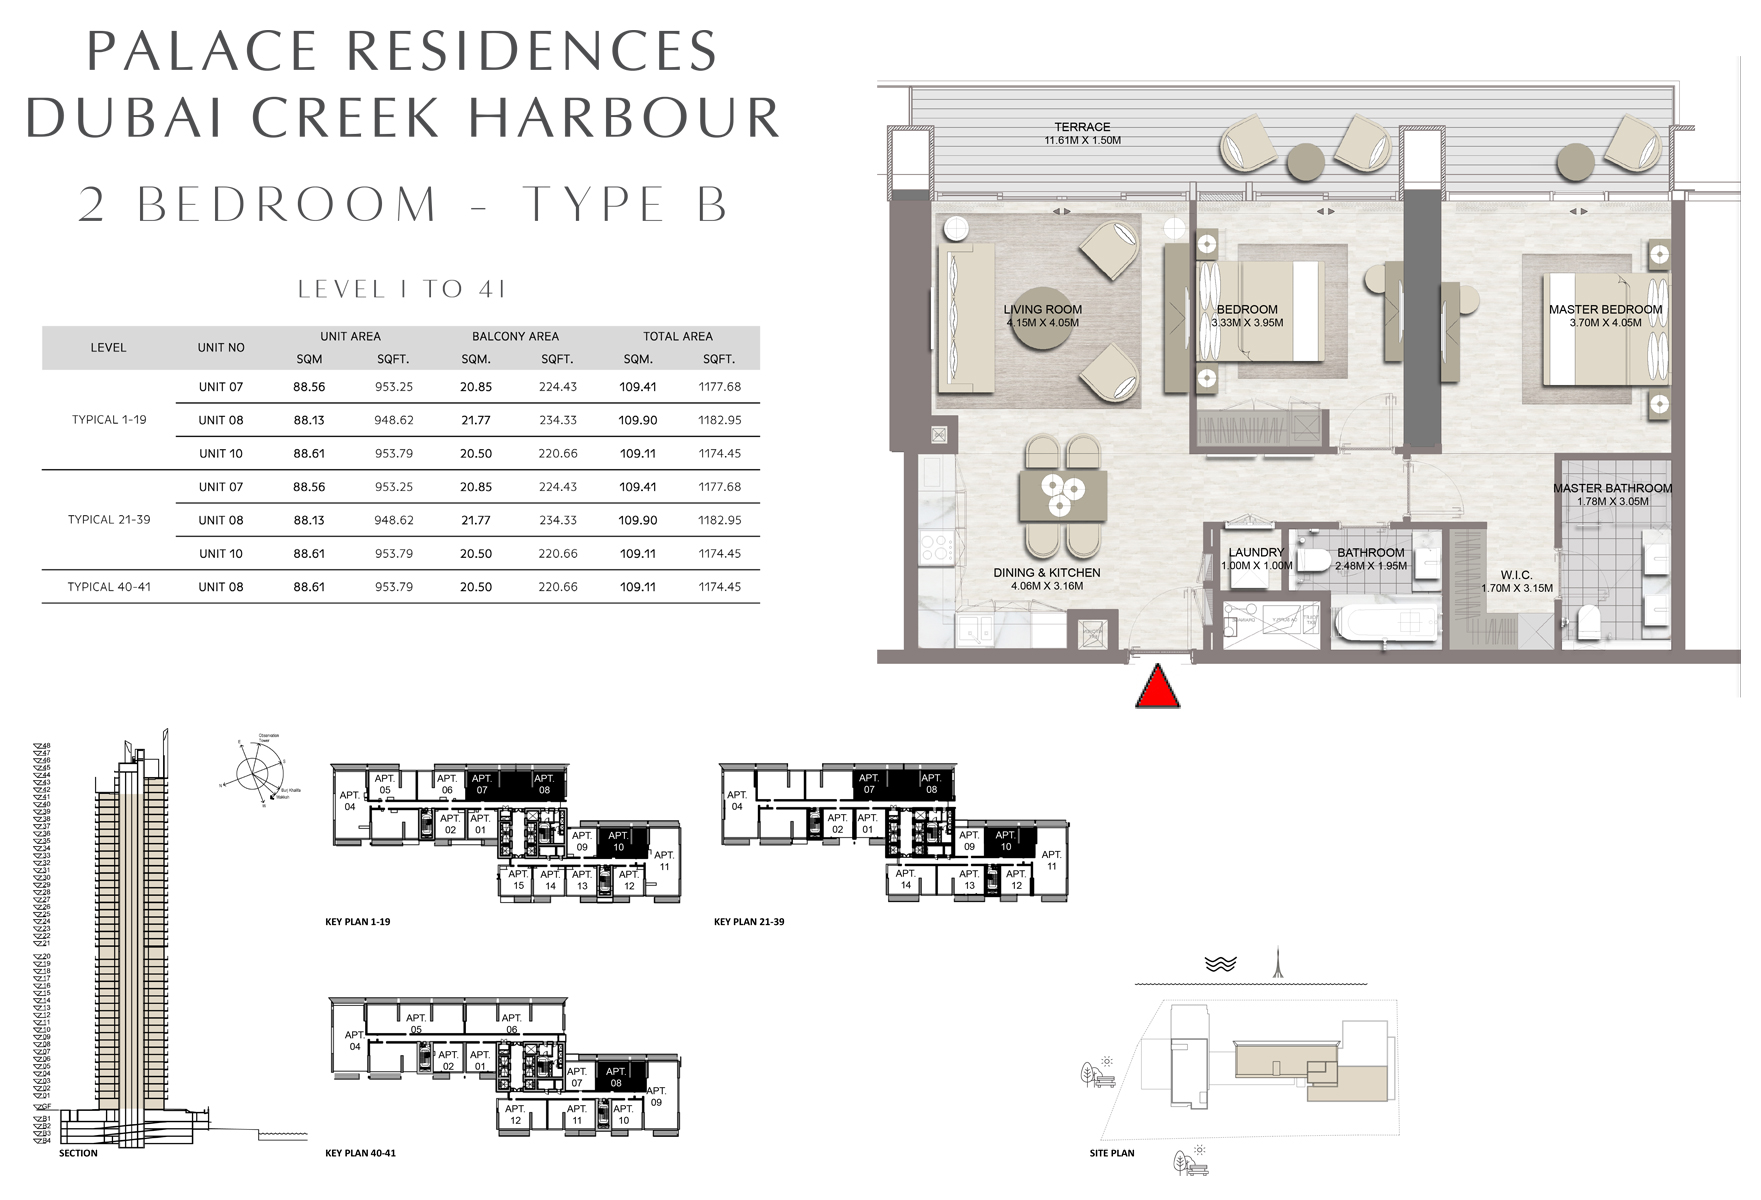 2 Bedroom - Type B - Level 1 To 41 Size 1174.45 to 1182.95 sq ft